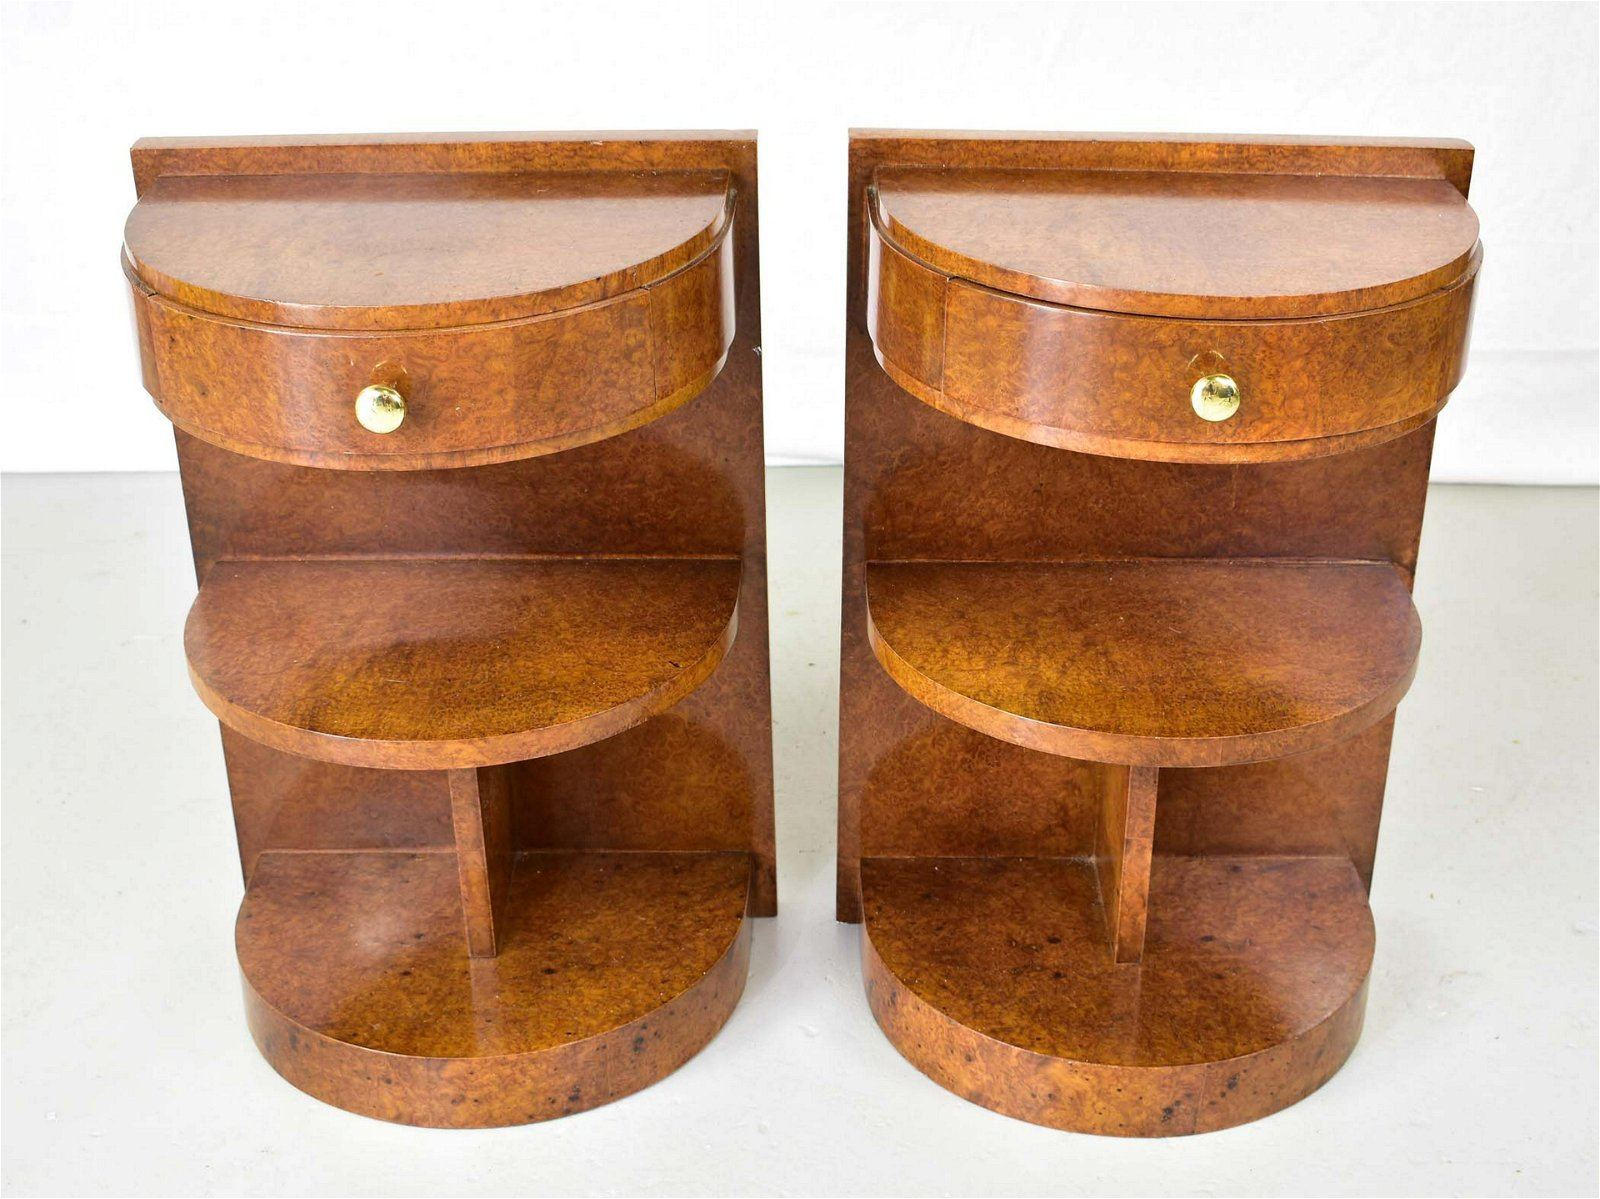 PAIR OF FRENCH ART DECO BURLWOOD BEDSIDE TABLES